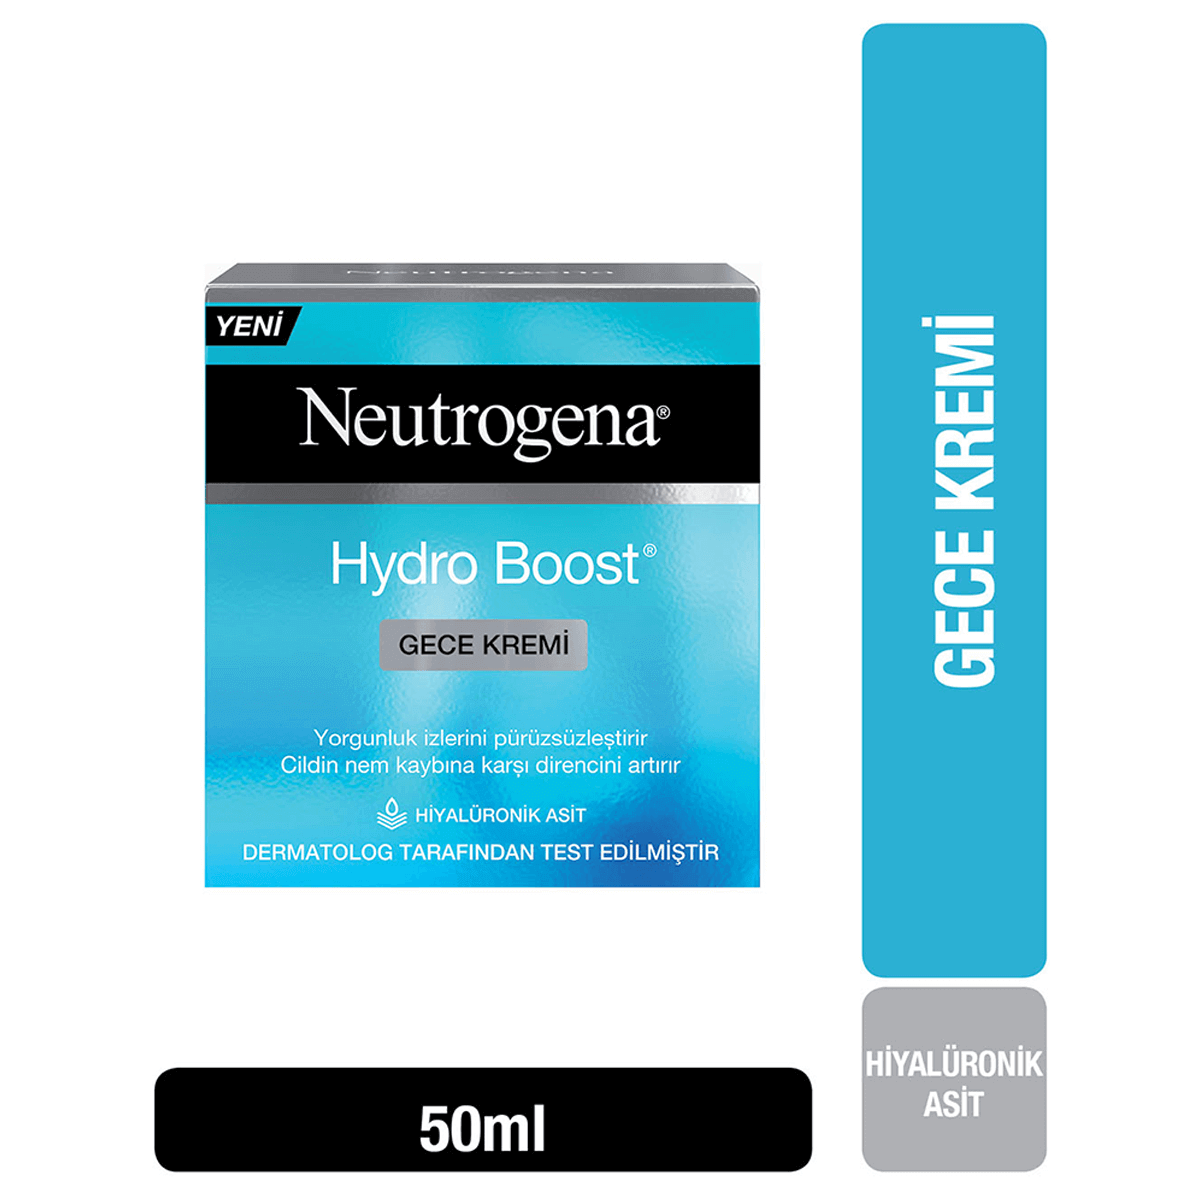 Neutrogena Hydro Boost Gece Kremi 50ml